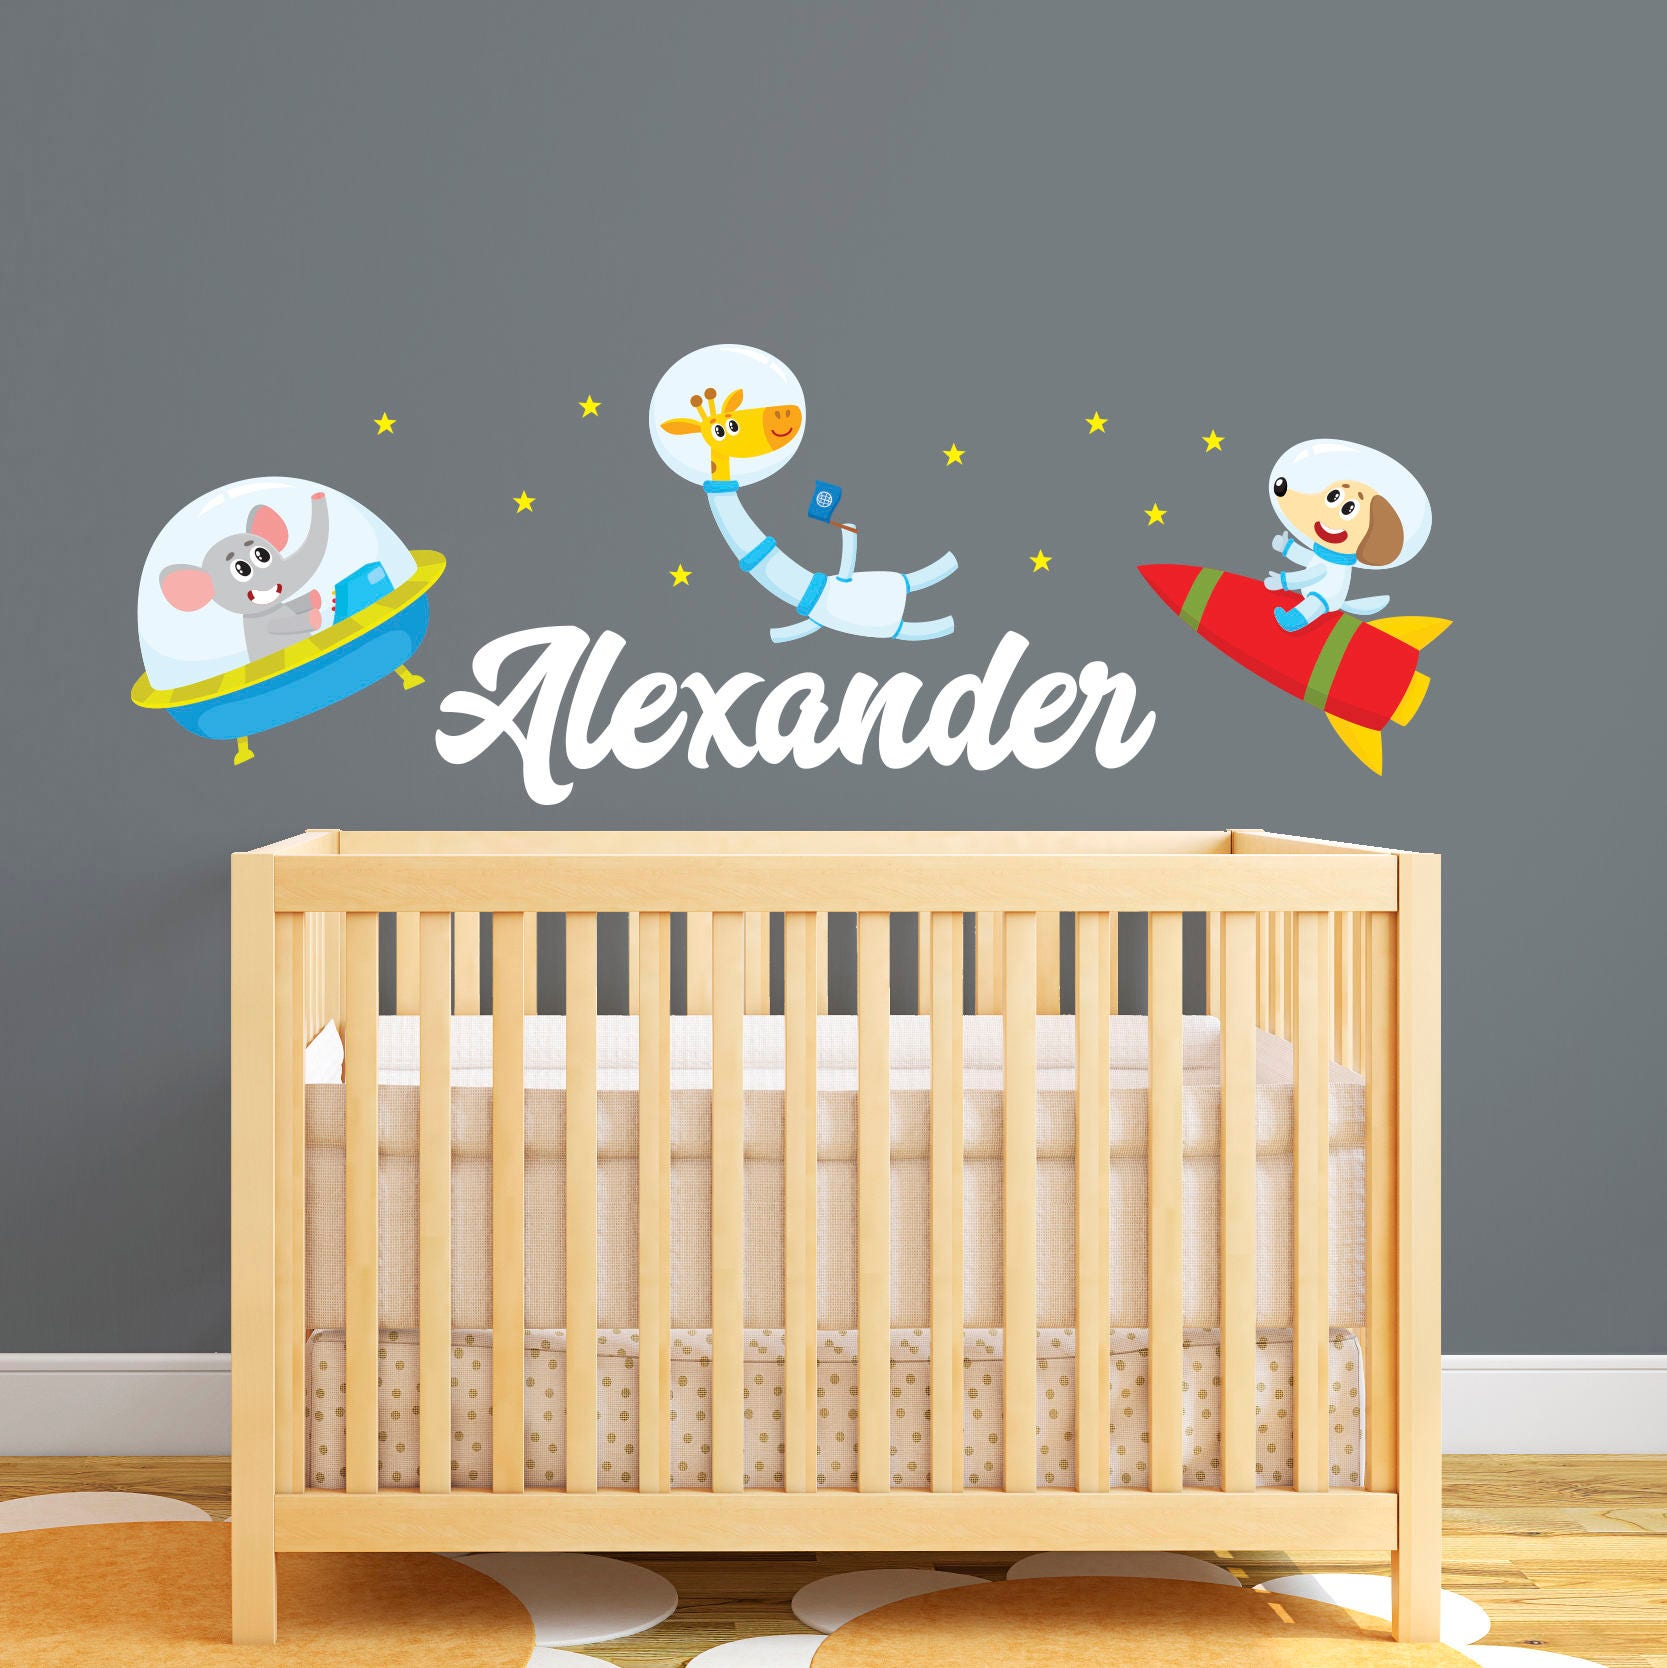 Personalized Name Wall Decal Space Wall Decal Animals in